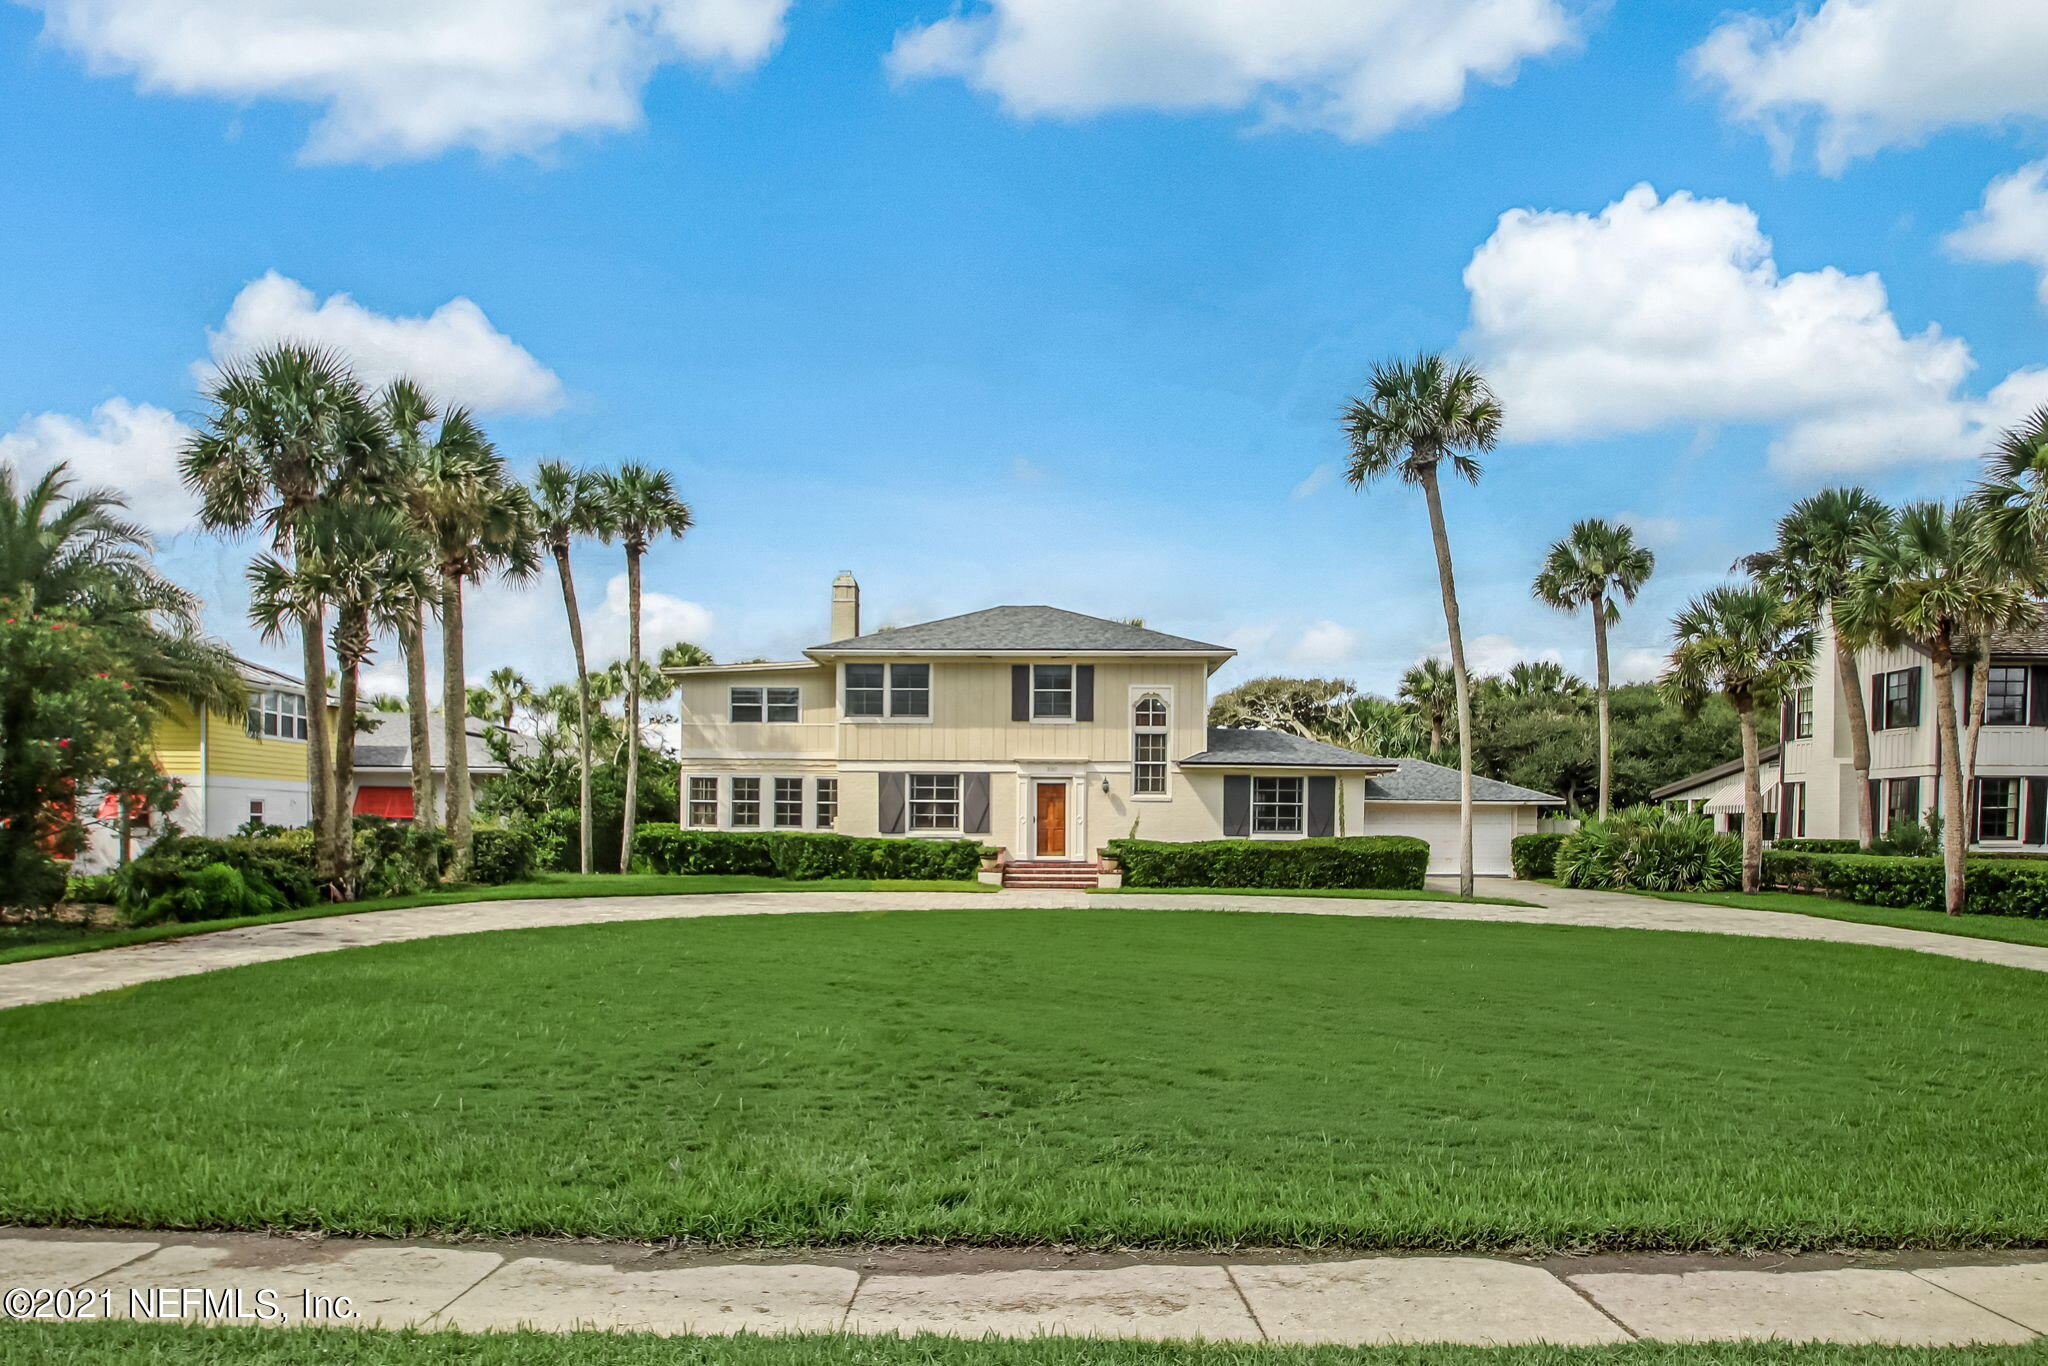 Rare opportunity to own one of the last original beach homes on the Boulevard in Ponte Vedra Beach or  build your dream home from the ground up.  This 3,300 sq ft home,with it's nostalgic feel, sits on .54 acres with 100ft frontage on the Blvd and backs up to the 3rd green of the Ponte Vedra Inn and Club Ocean Course. Spacious pavered circular drive already in place, this home has plenty of room for everyone with 5 bedrooms and 4 bathrooms in the main house and 1 bedroom and 1 bath suite off the garage. Additional features include formal living and dning rooms, large kitchen, Florida room and a large deck overlooking the expansive backyard and golf course.